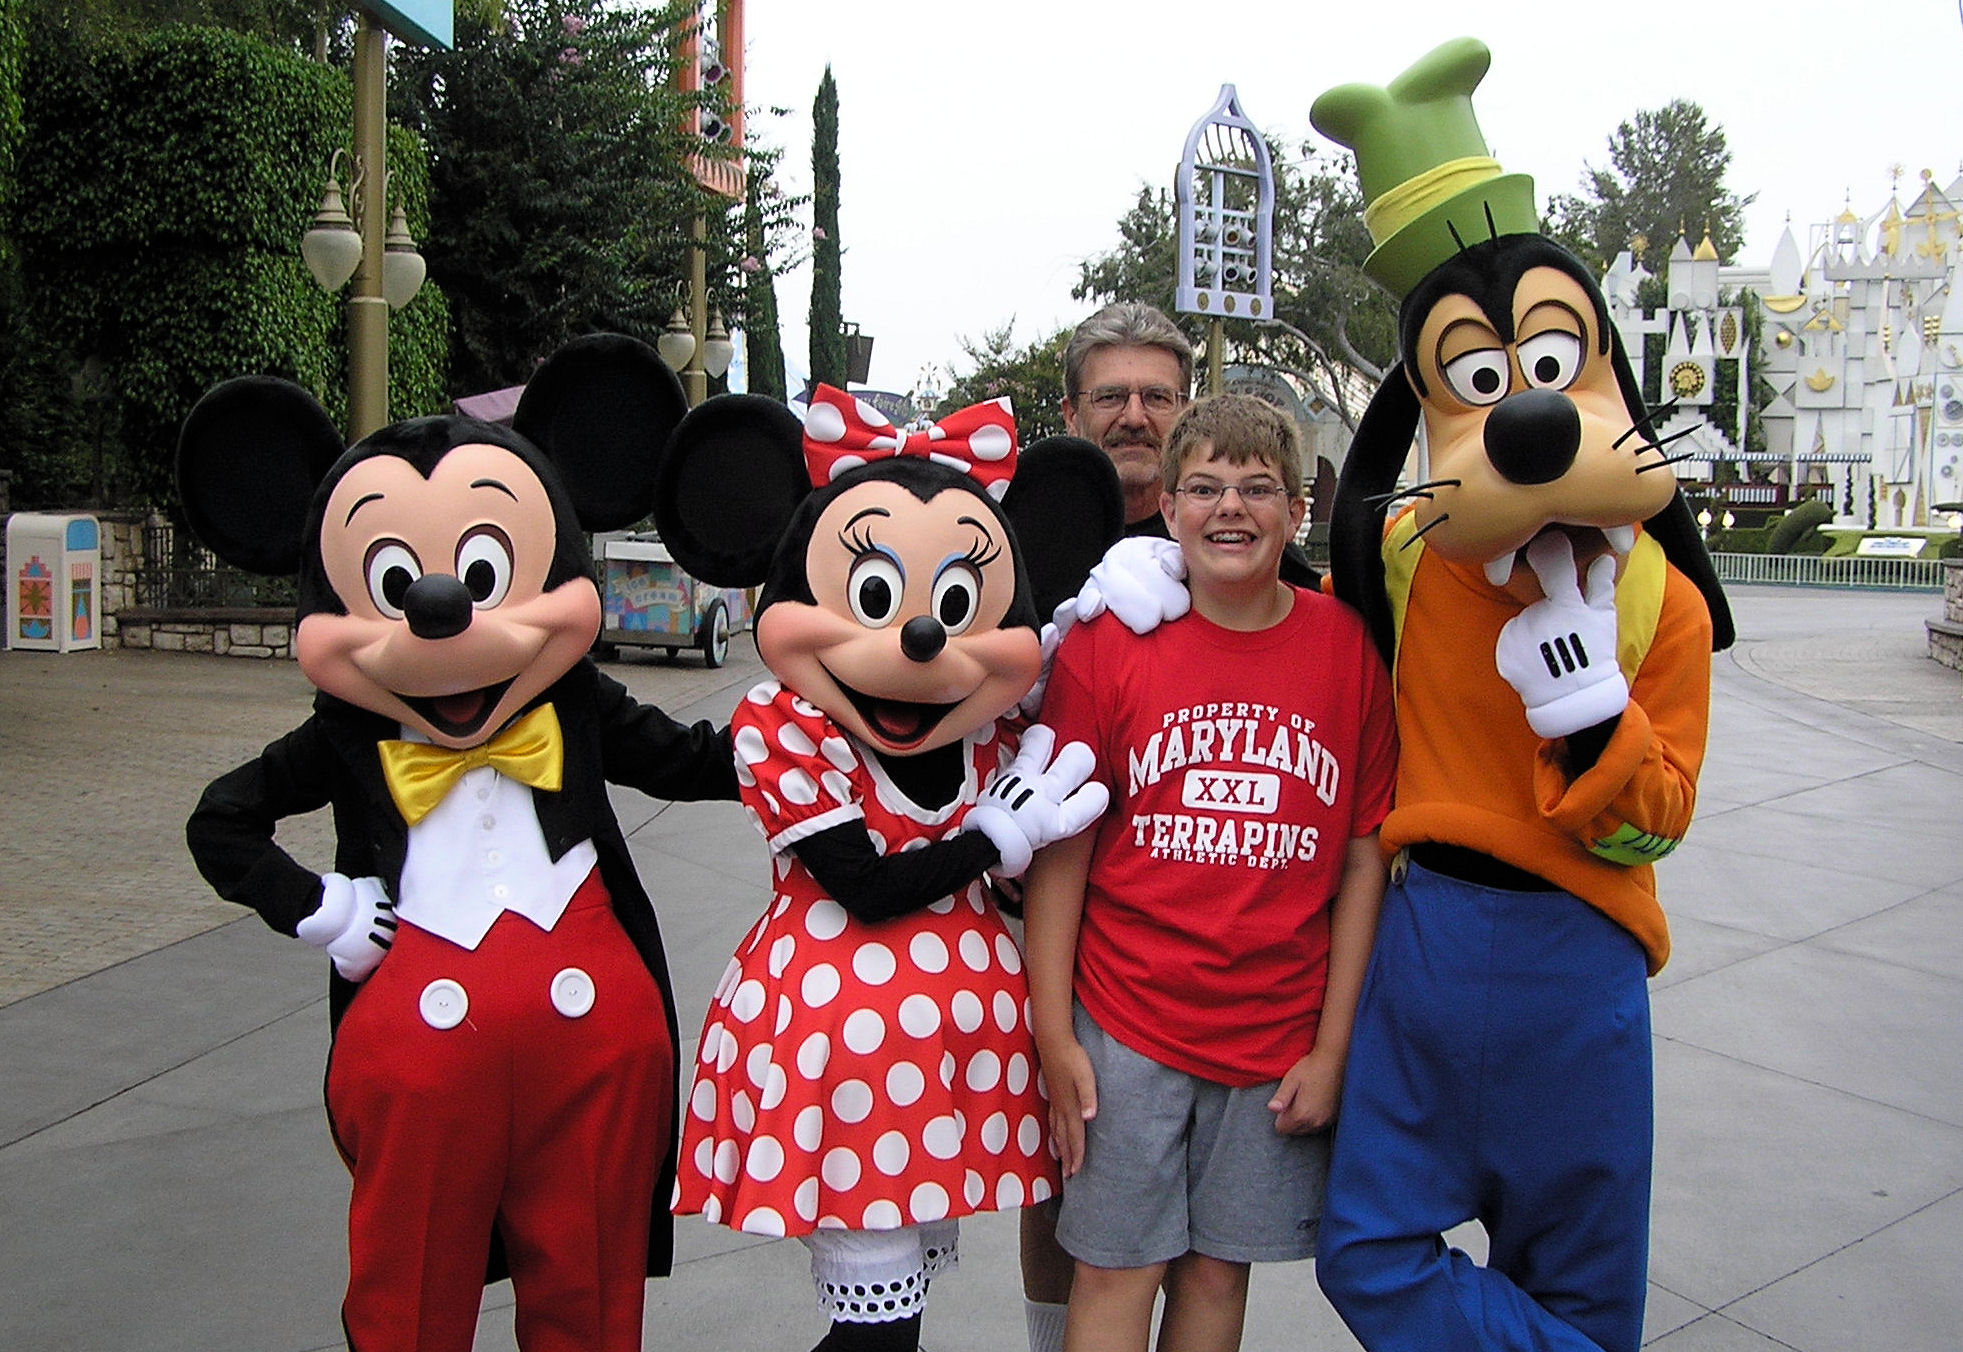 Me and my dad with Mickey, Minnie, and Goofy at Disneyland.